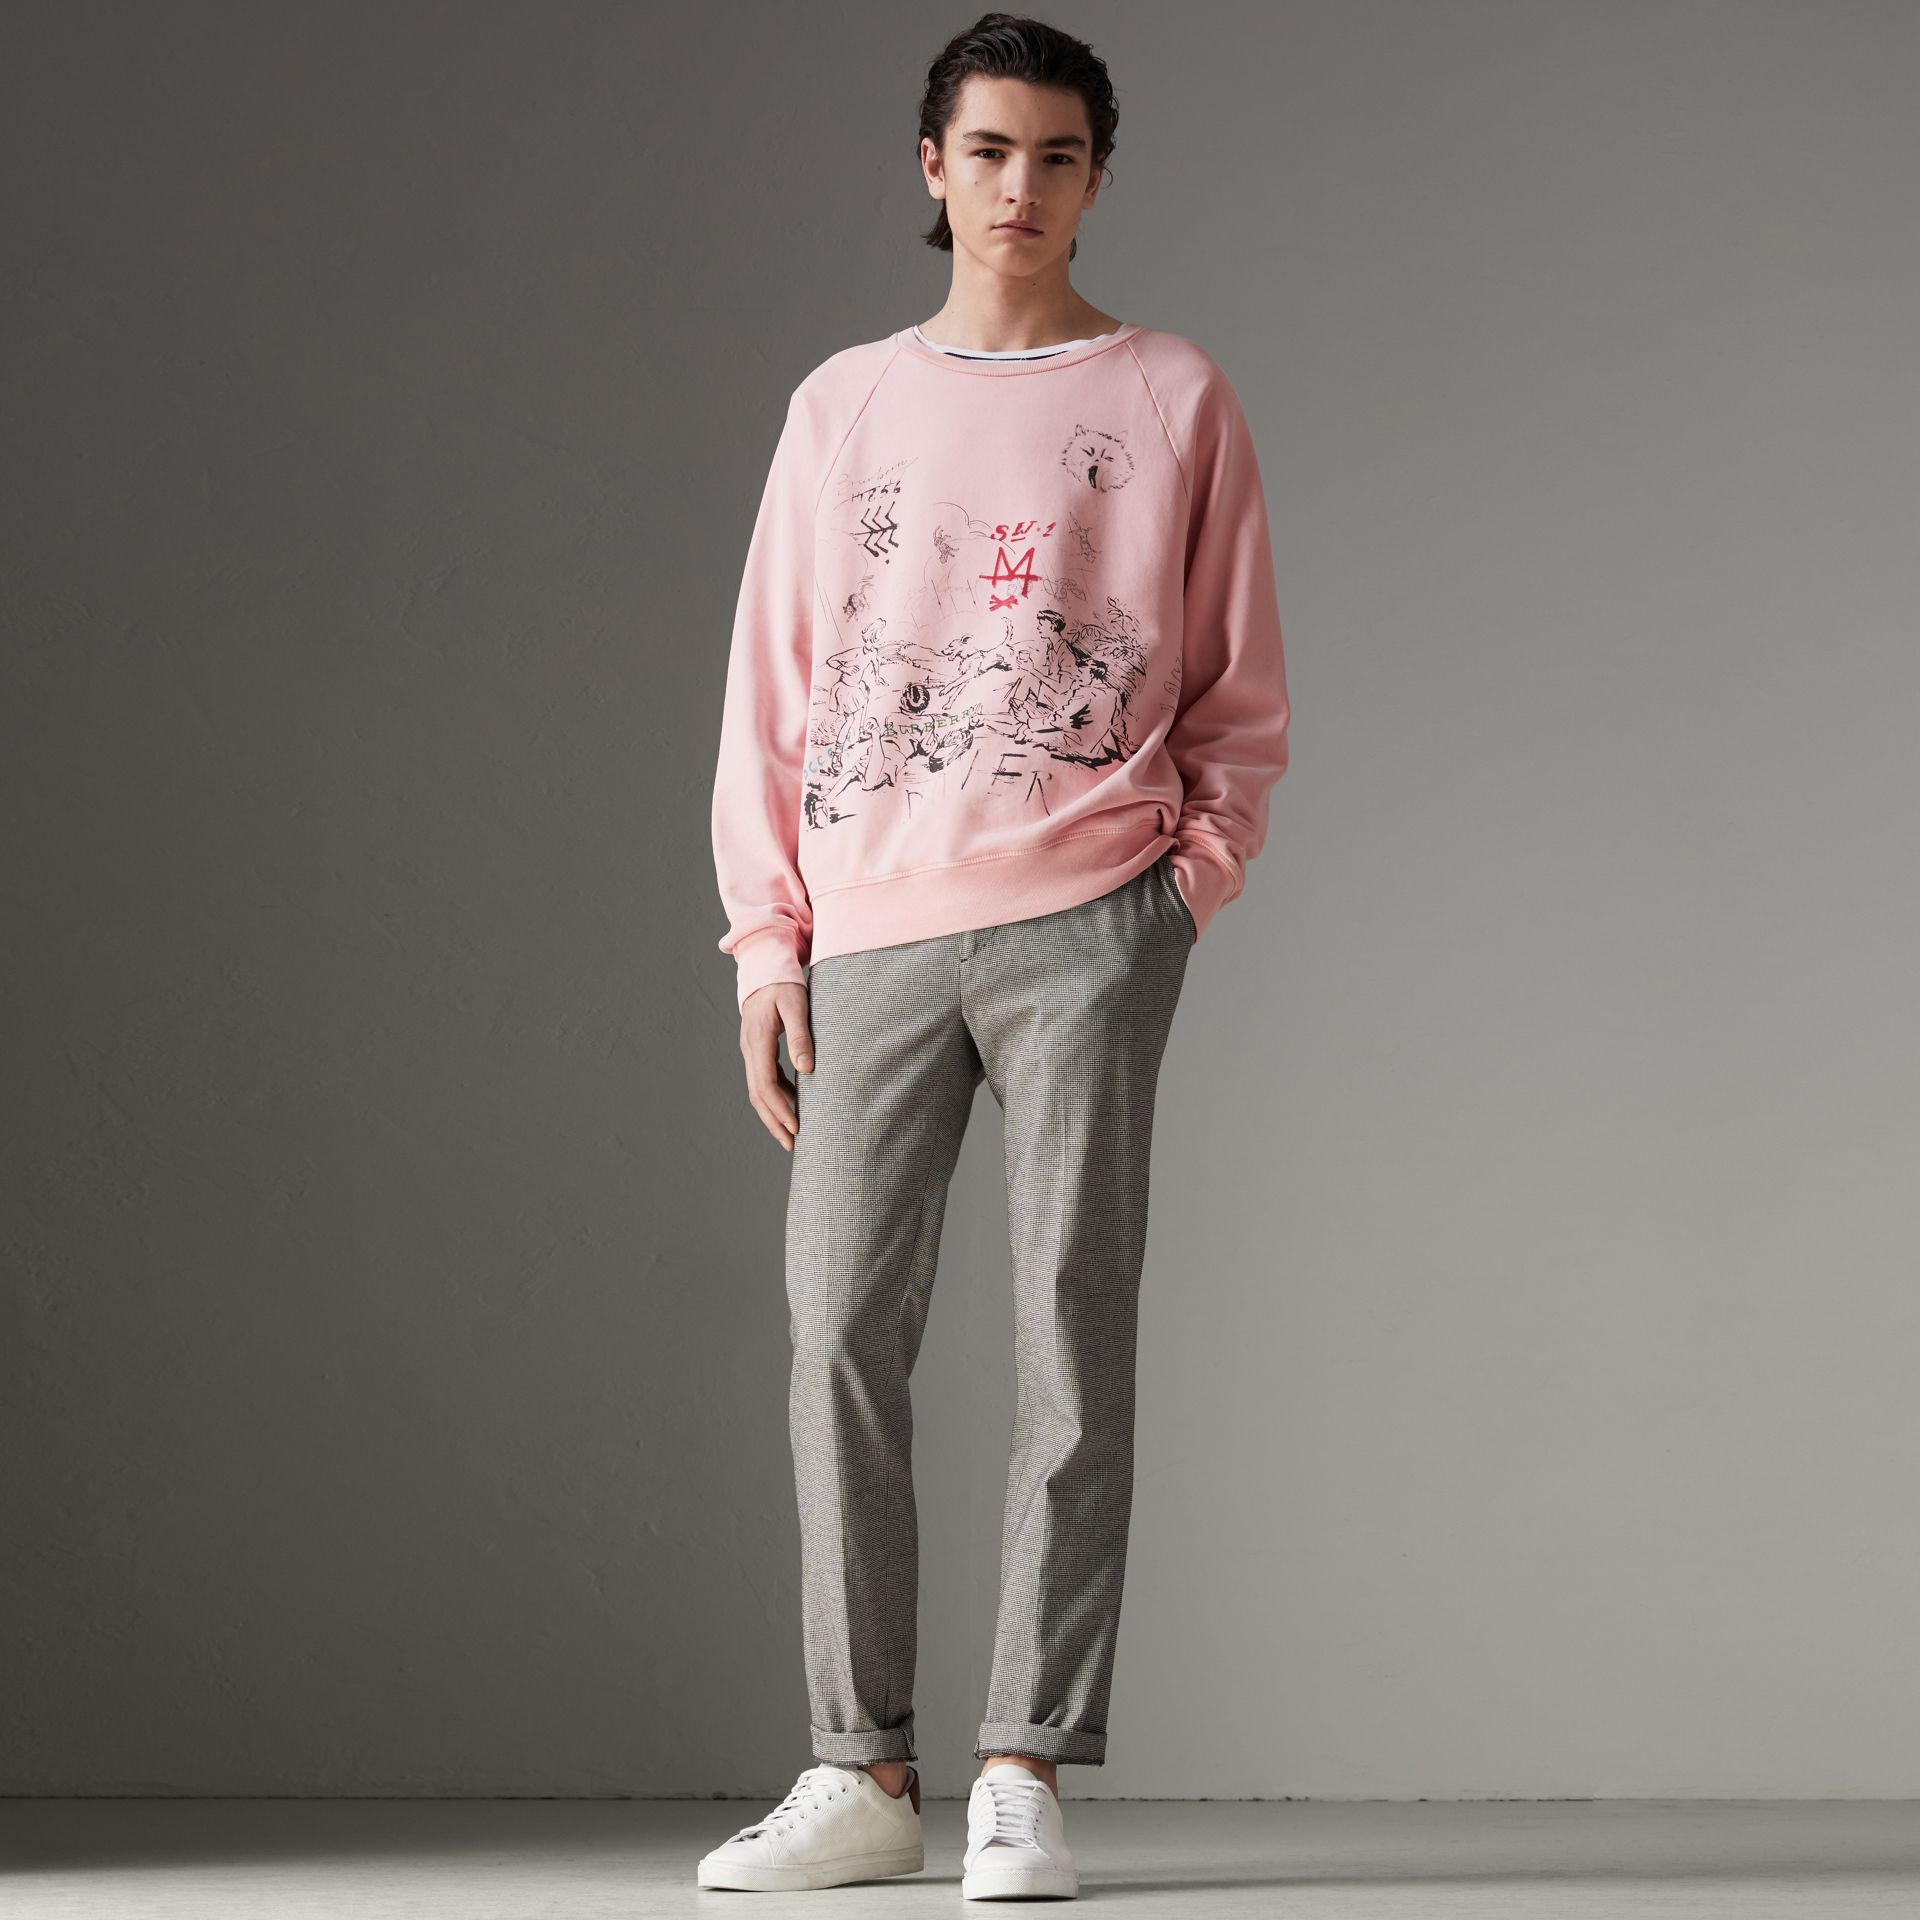 Adventure Print Cotton Sweatshirt in Light Pink - Men | Burberry - gallery image 4